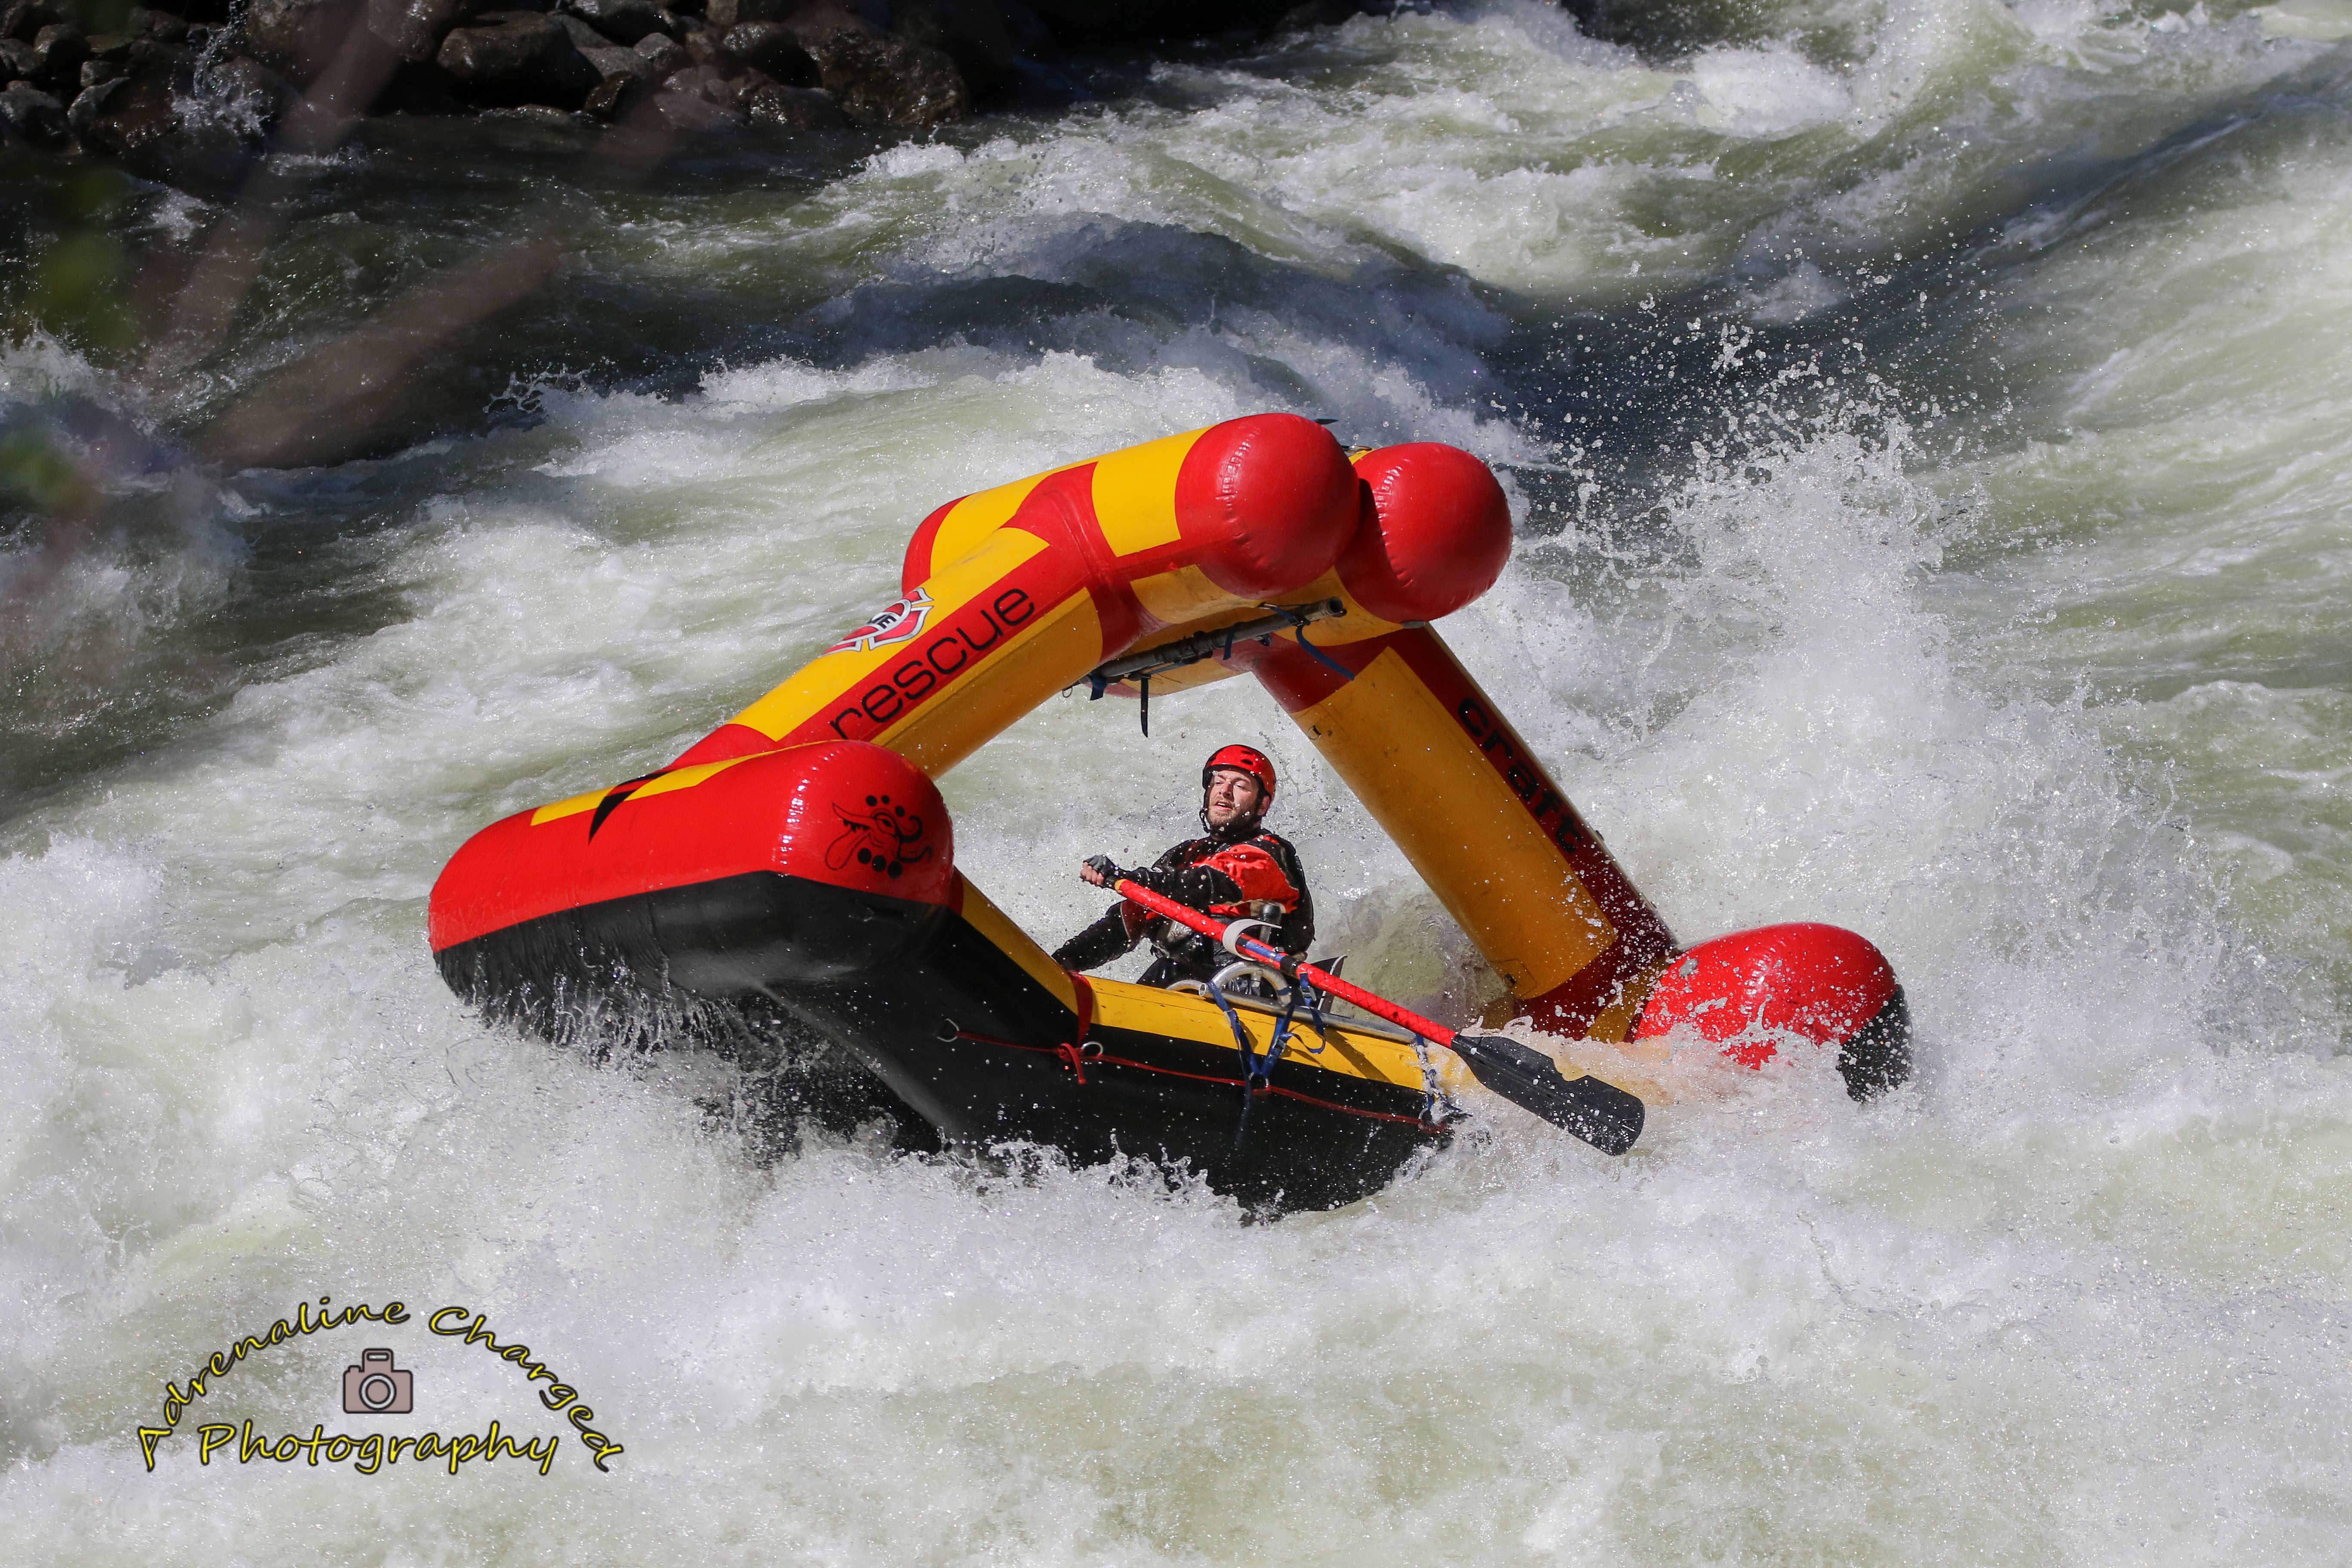 inflatables by Creature Craft going down rapids